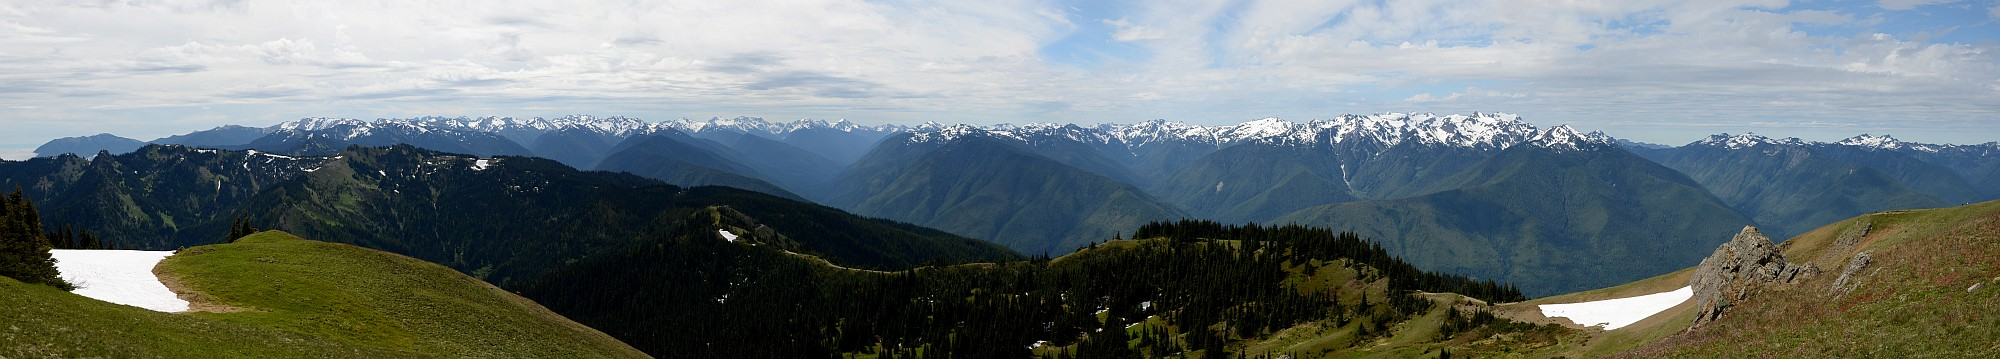 Hurricare ridge Panorama